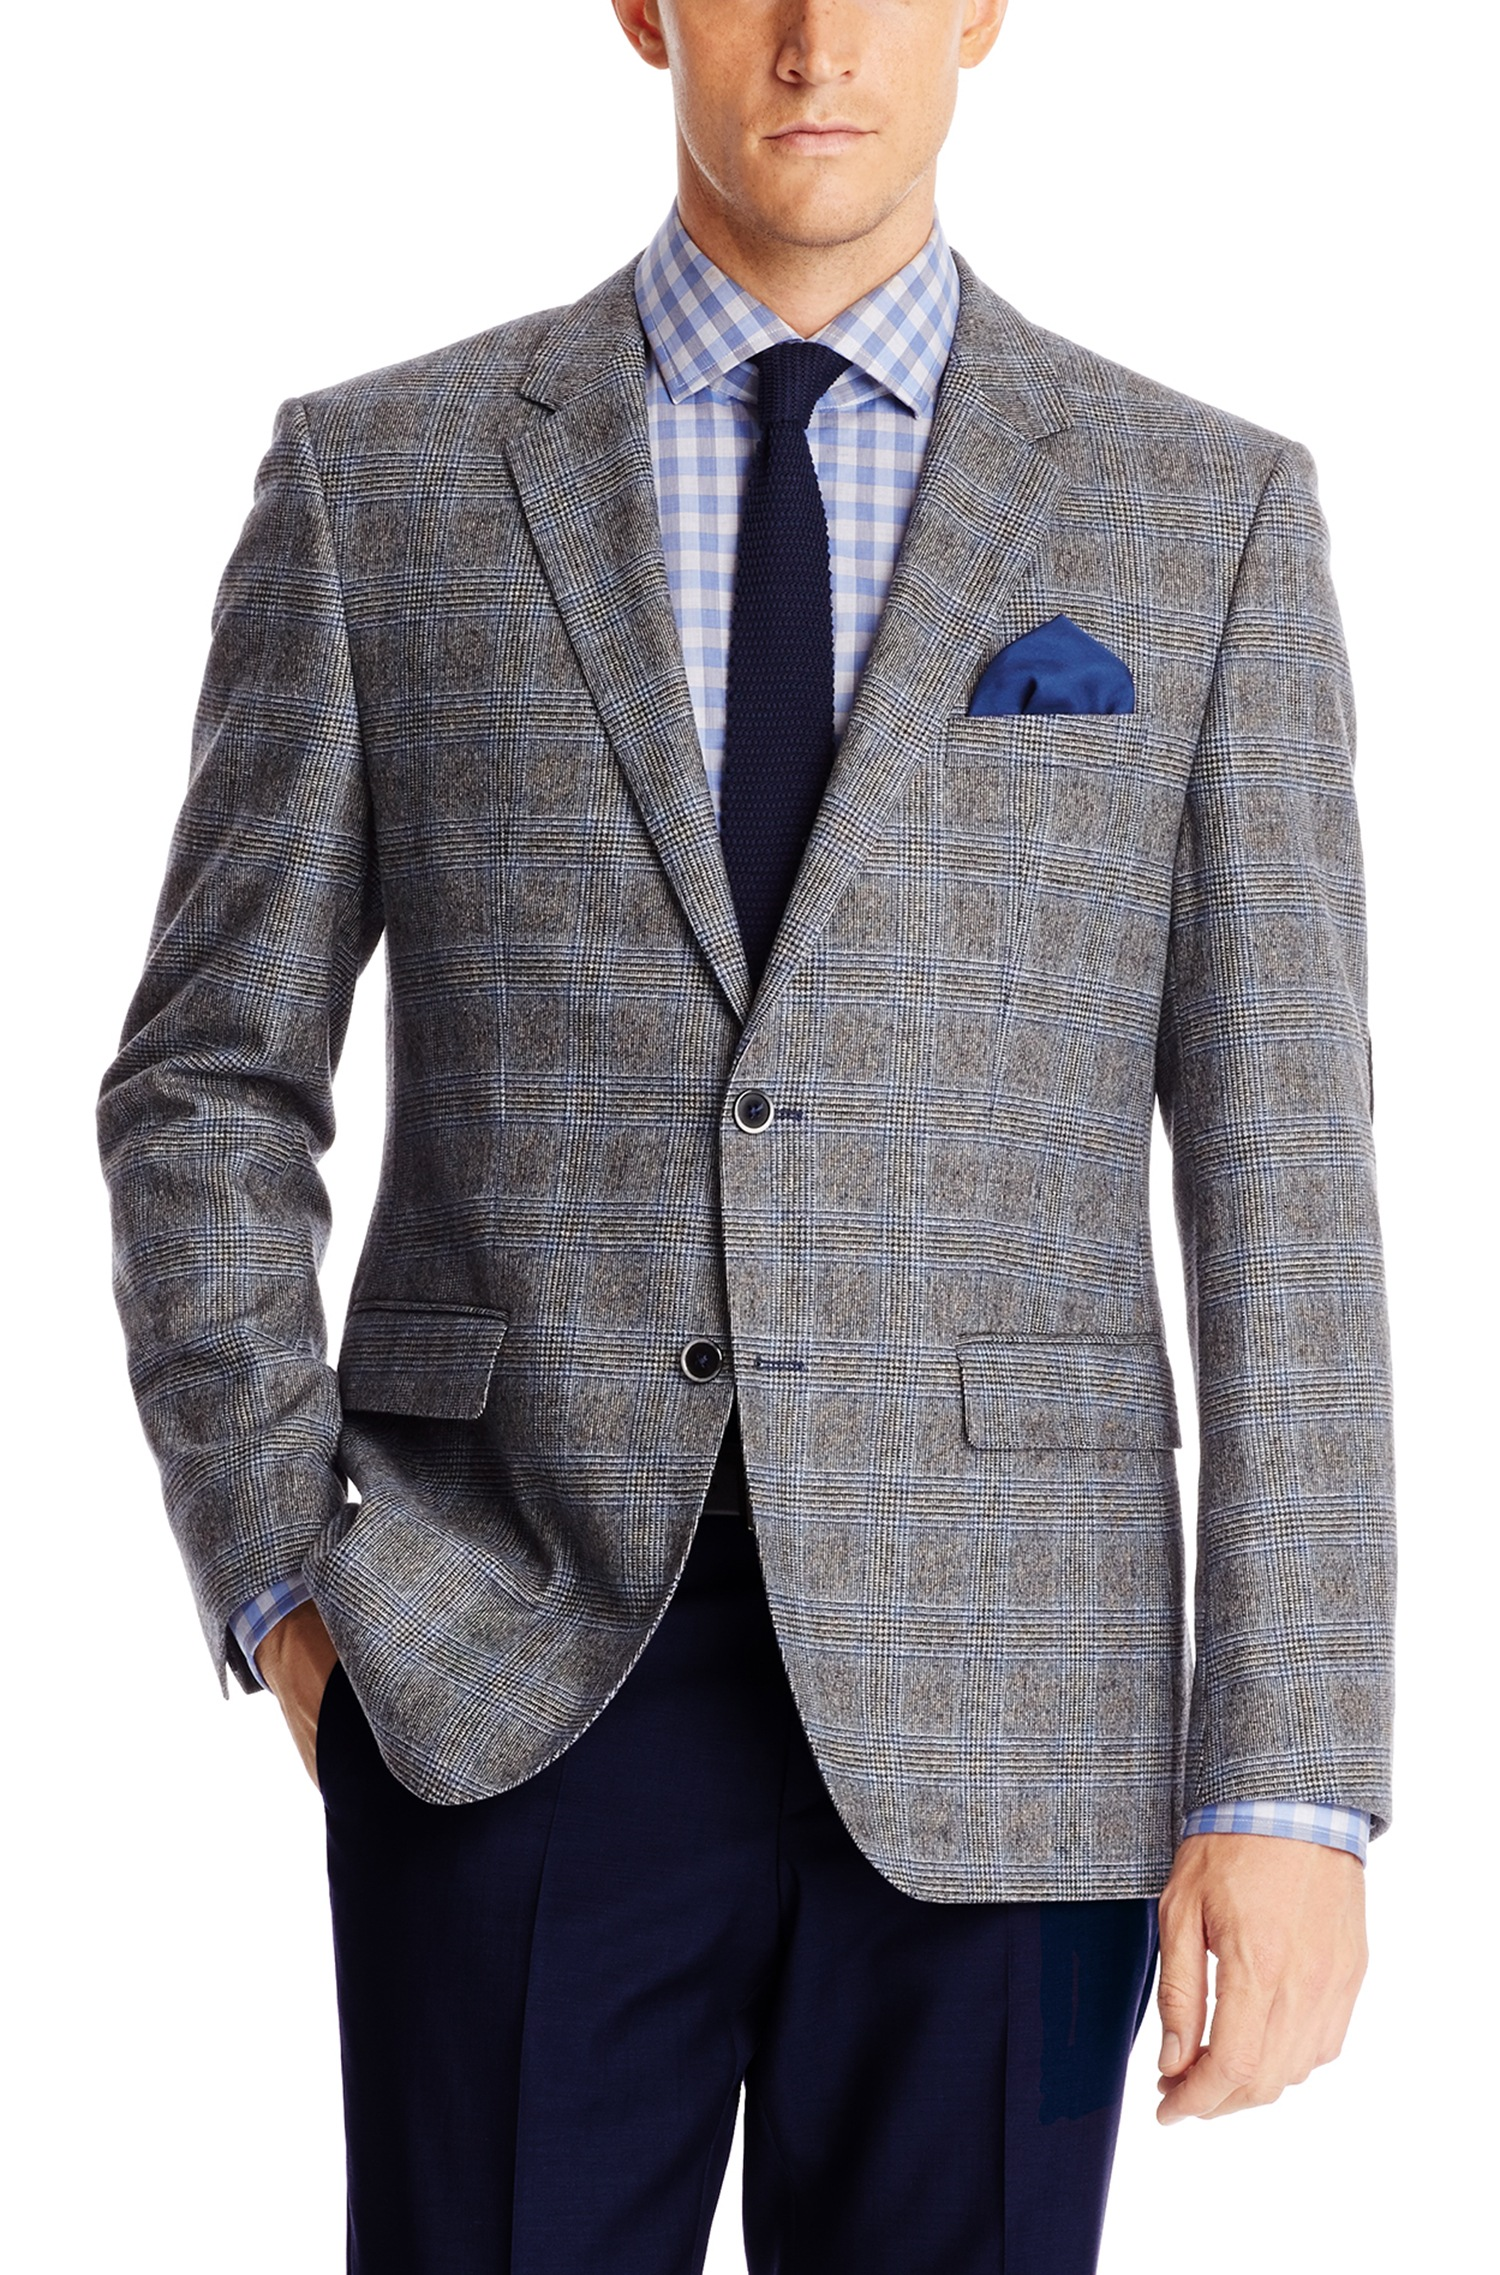 Hugo Boss 'The Smith' | Regular Fit, Stretch Virgin Wool Blend Sport Coat by BOSS | Hugo Boss Suits